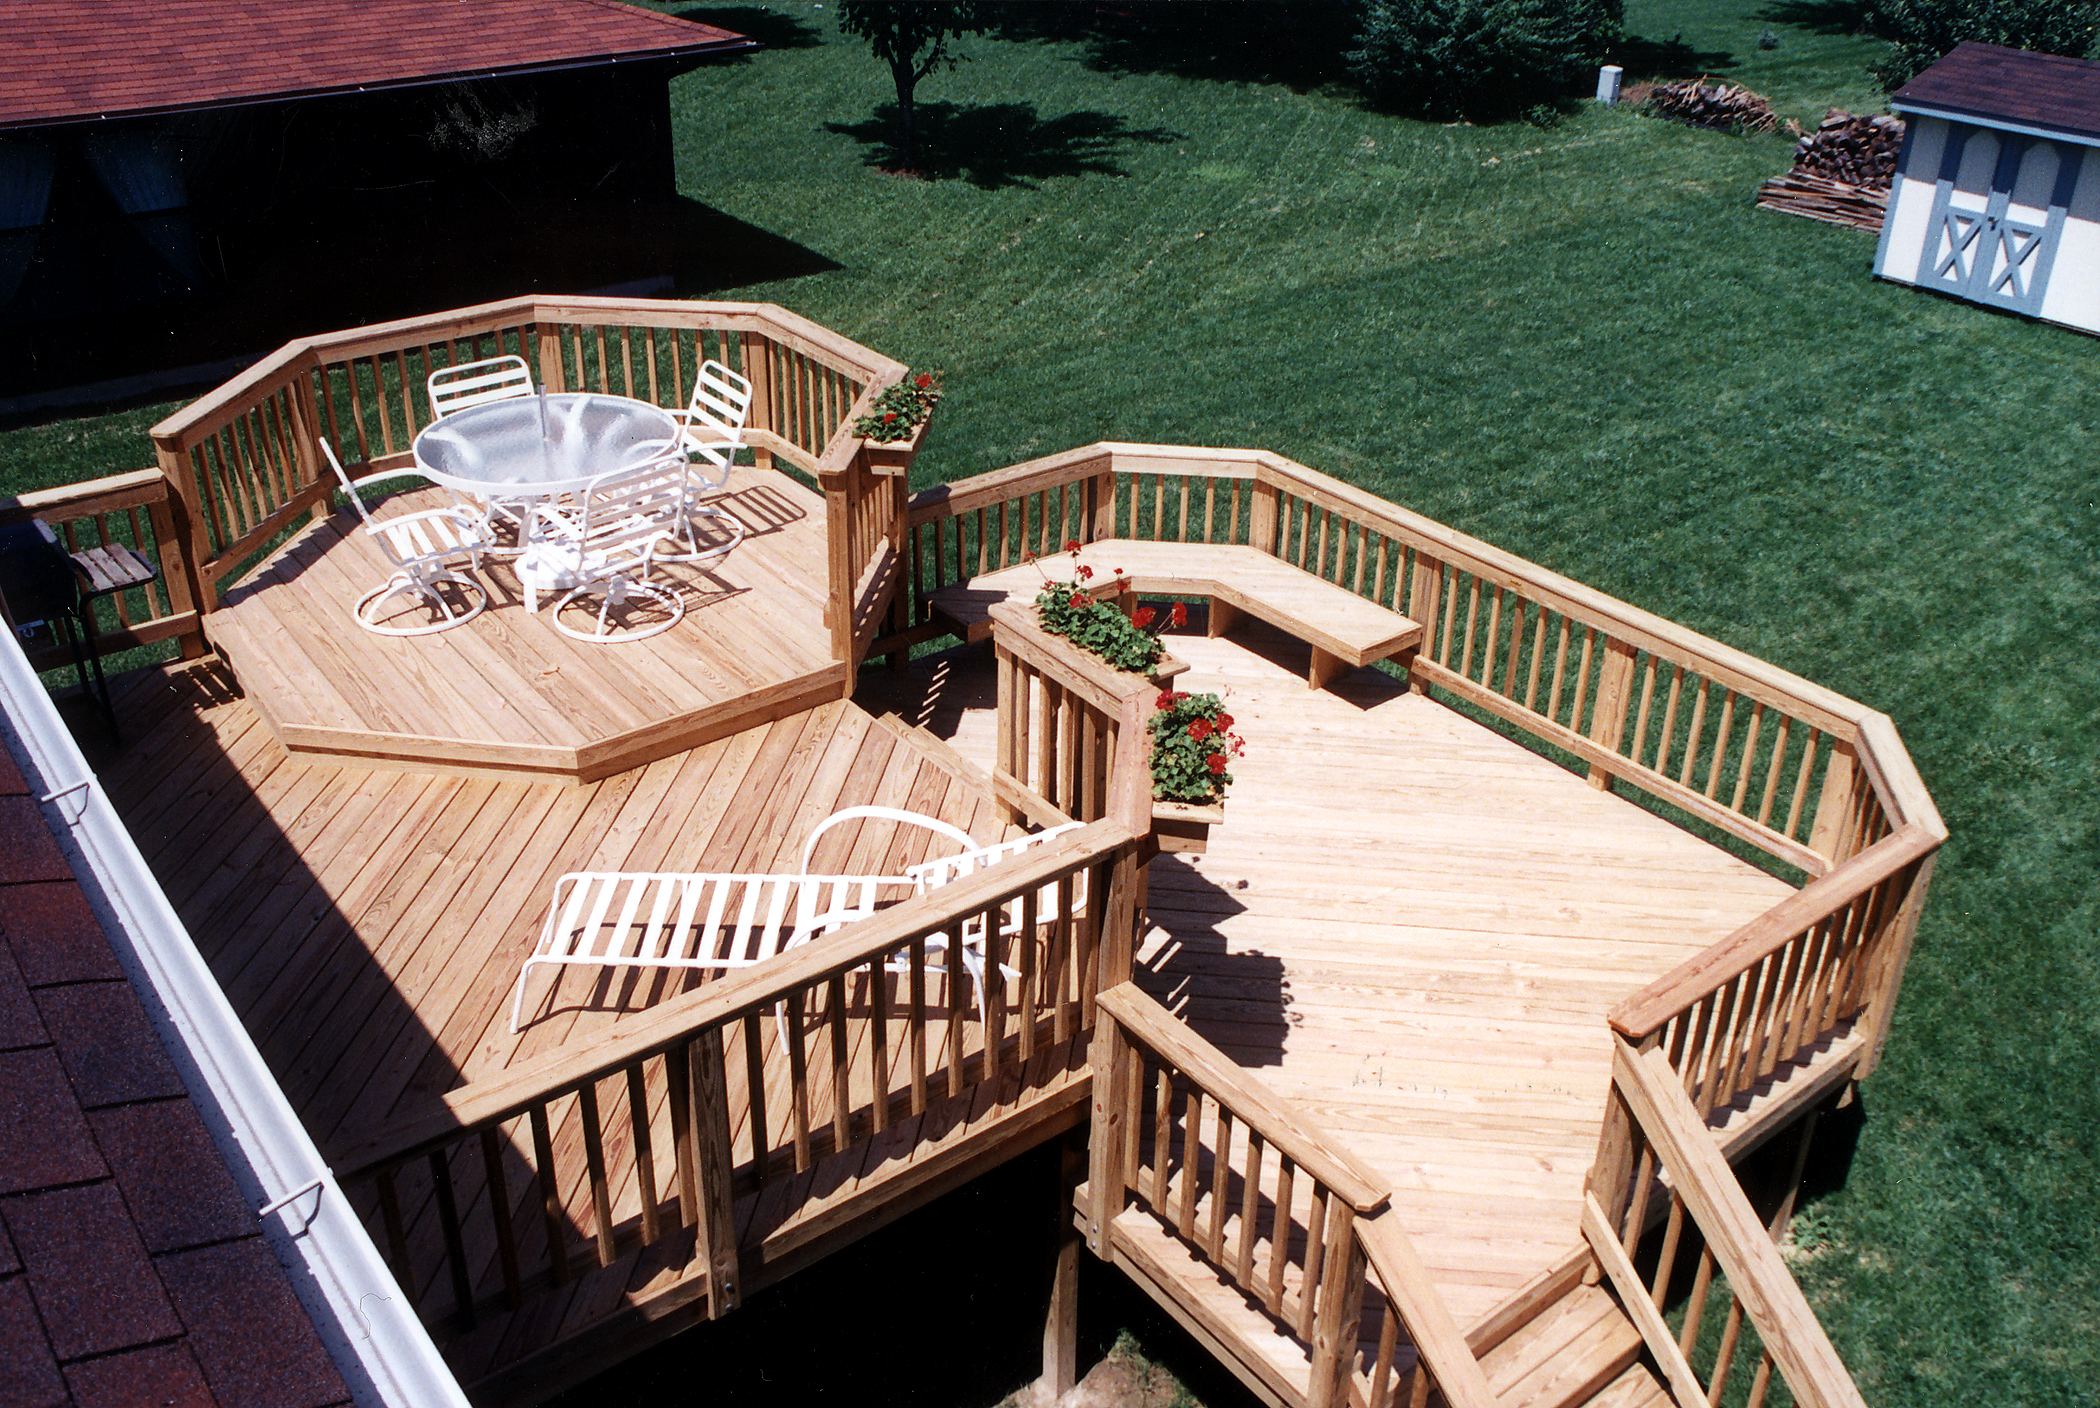 Multilevel deck design ideas by archadeck st louis Deck design ideas